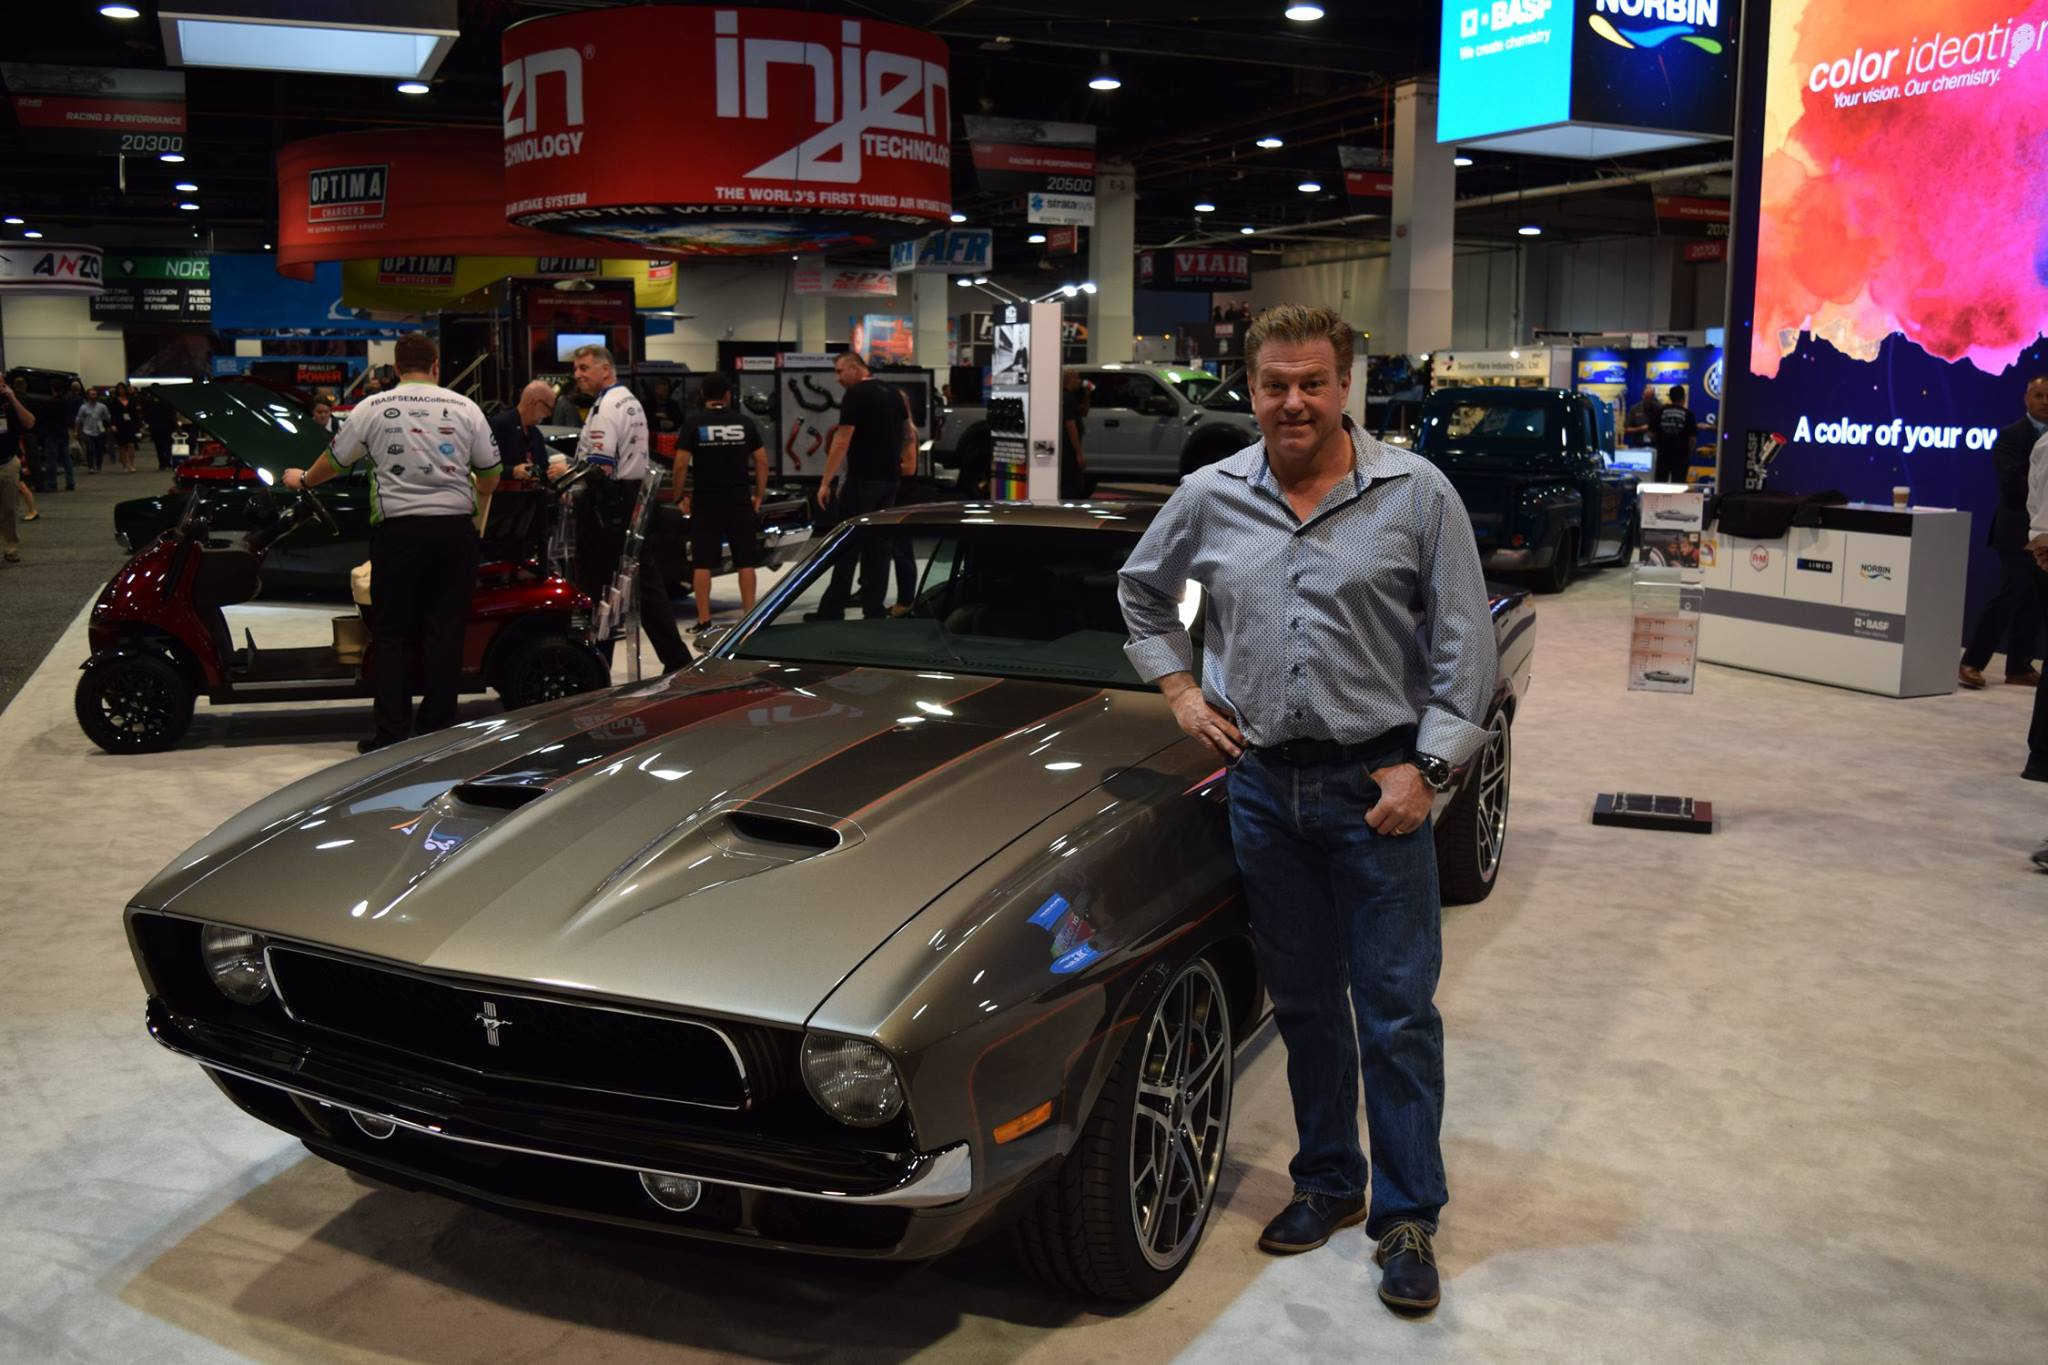 Chip Foose posing in front of a car